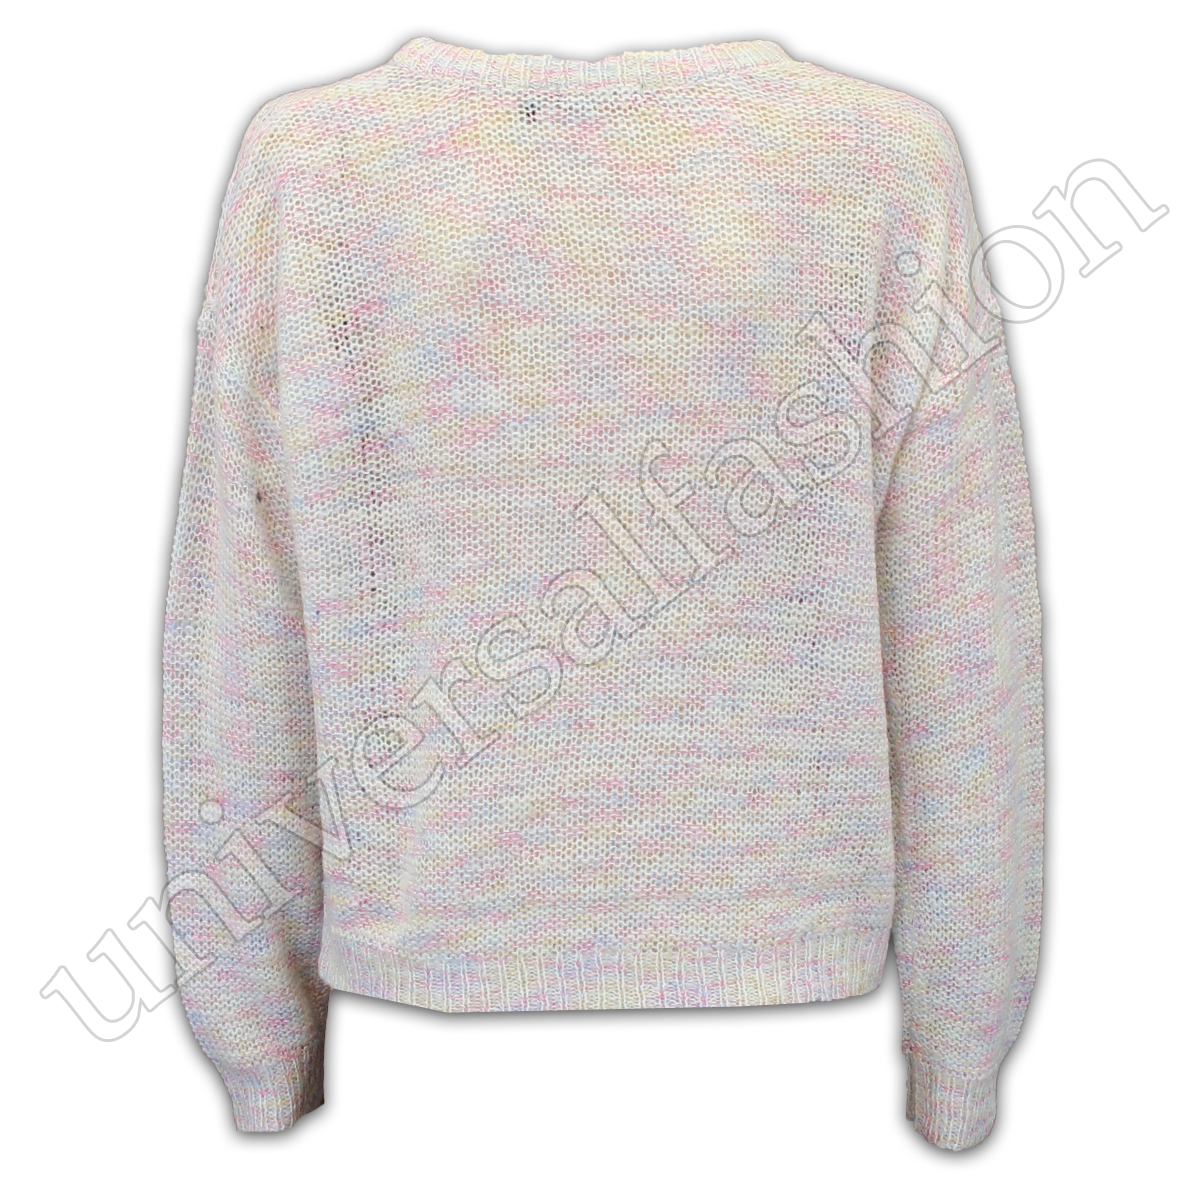 Mesdames pull Brave Soul Femme Tricoté Baggy top pull pull-over tricot partie